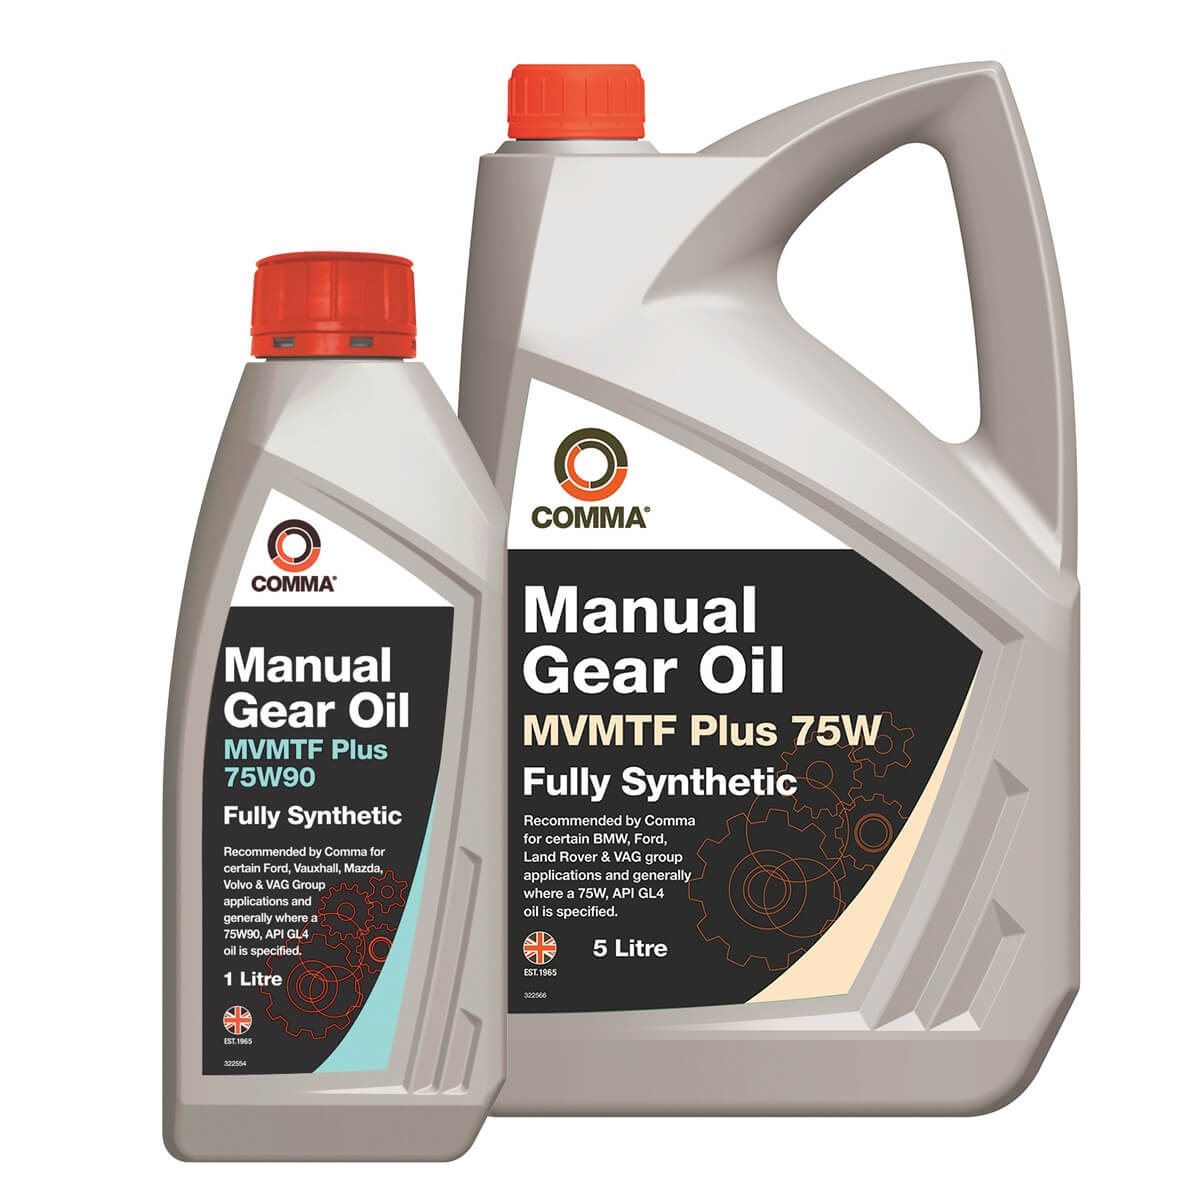 FIAT BRAVO Manual Transmission Oil